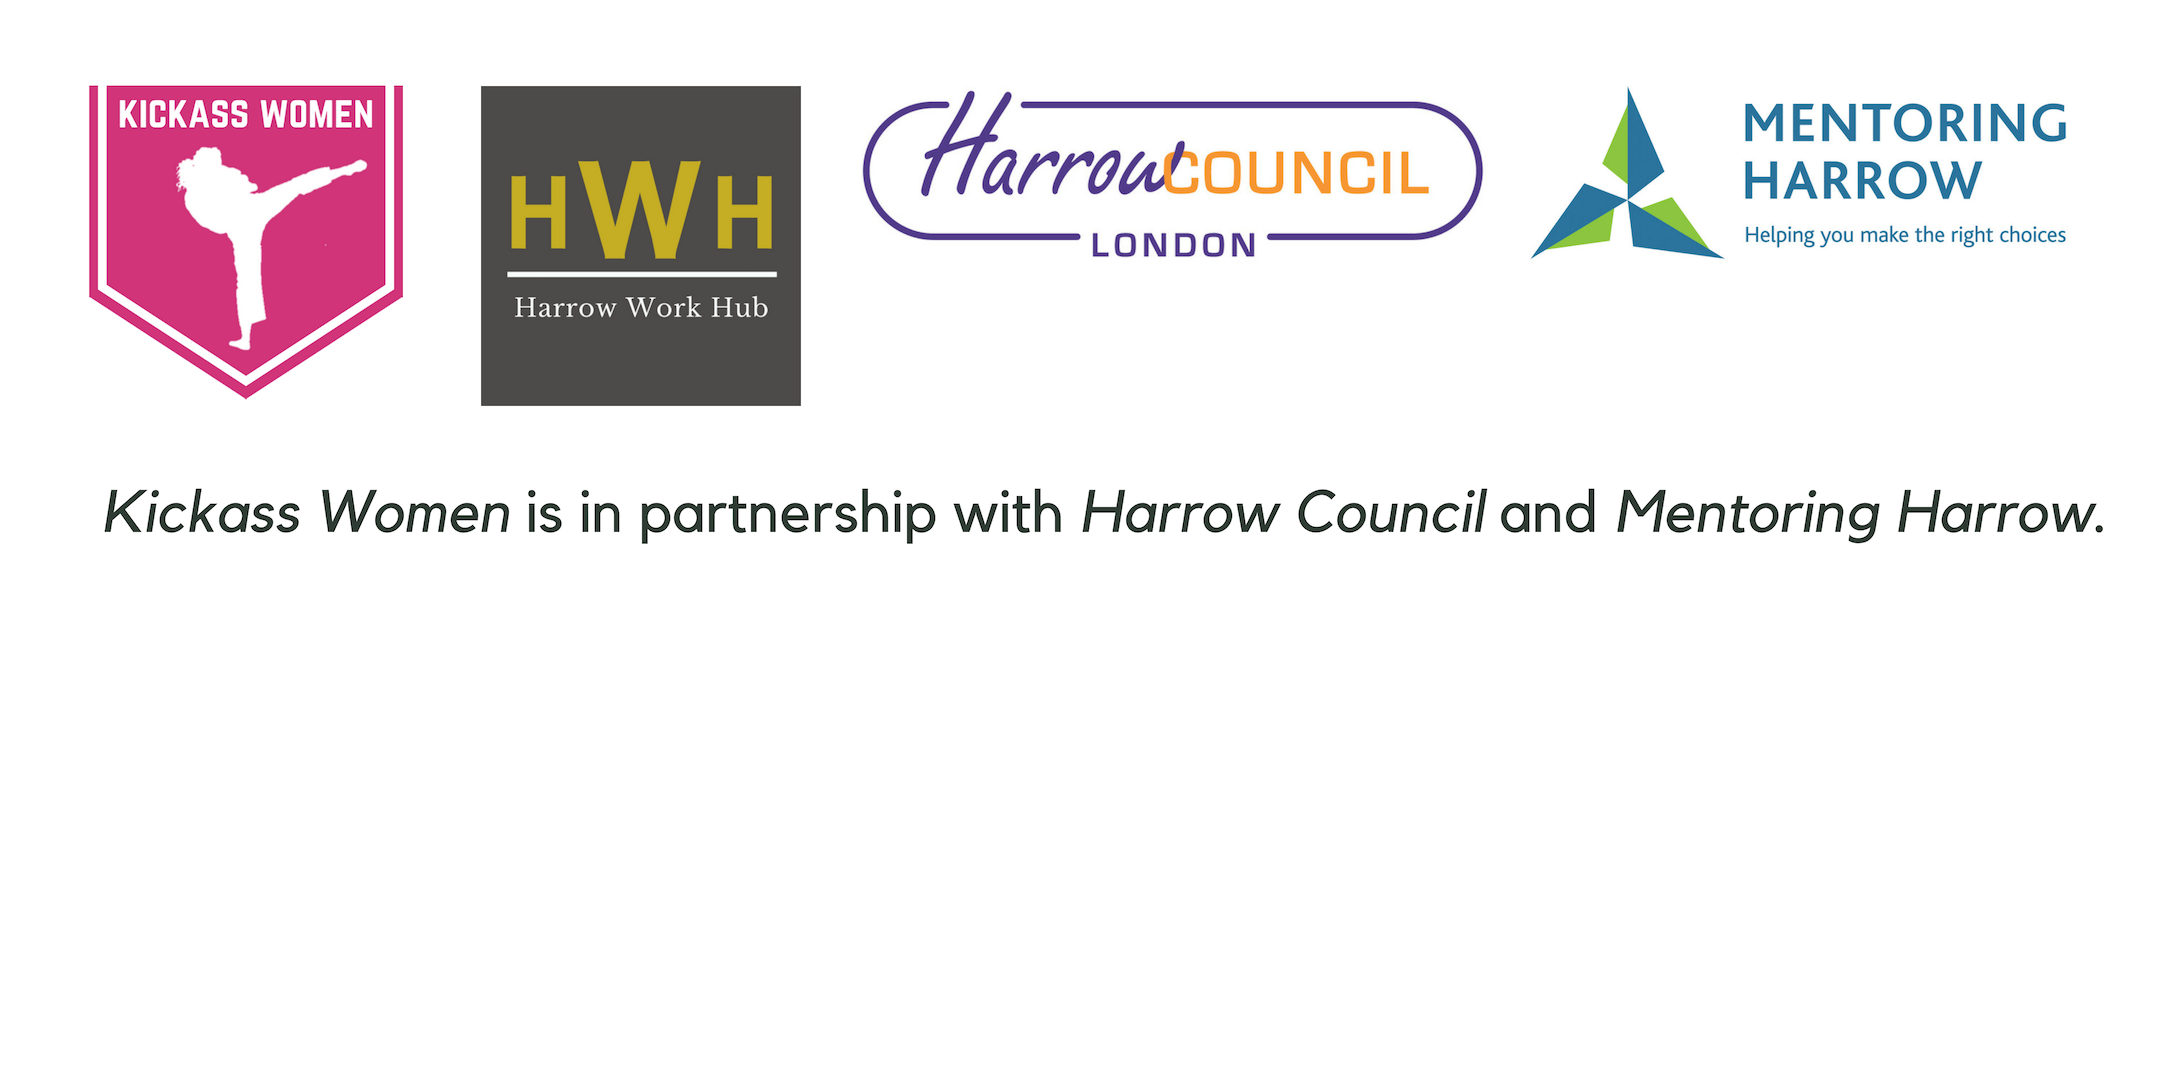 Kickass Women is in partnership with Harrow Council and Mentoring Harrow